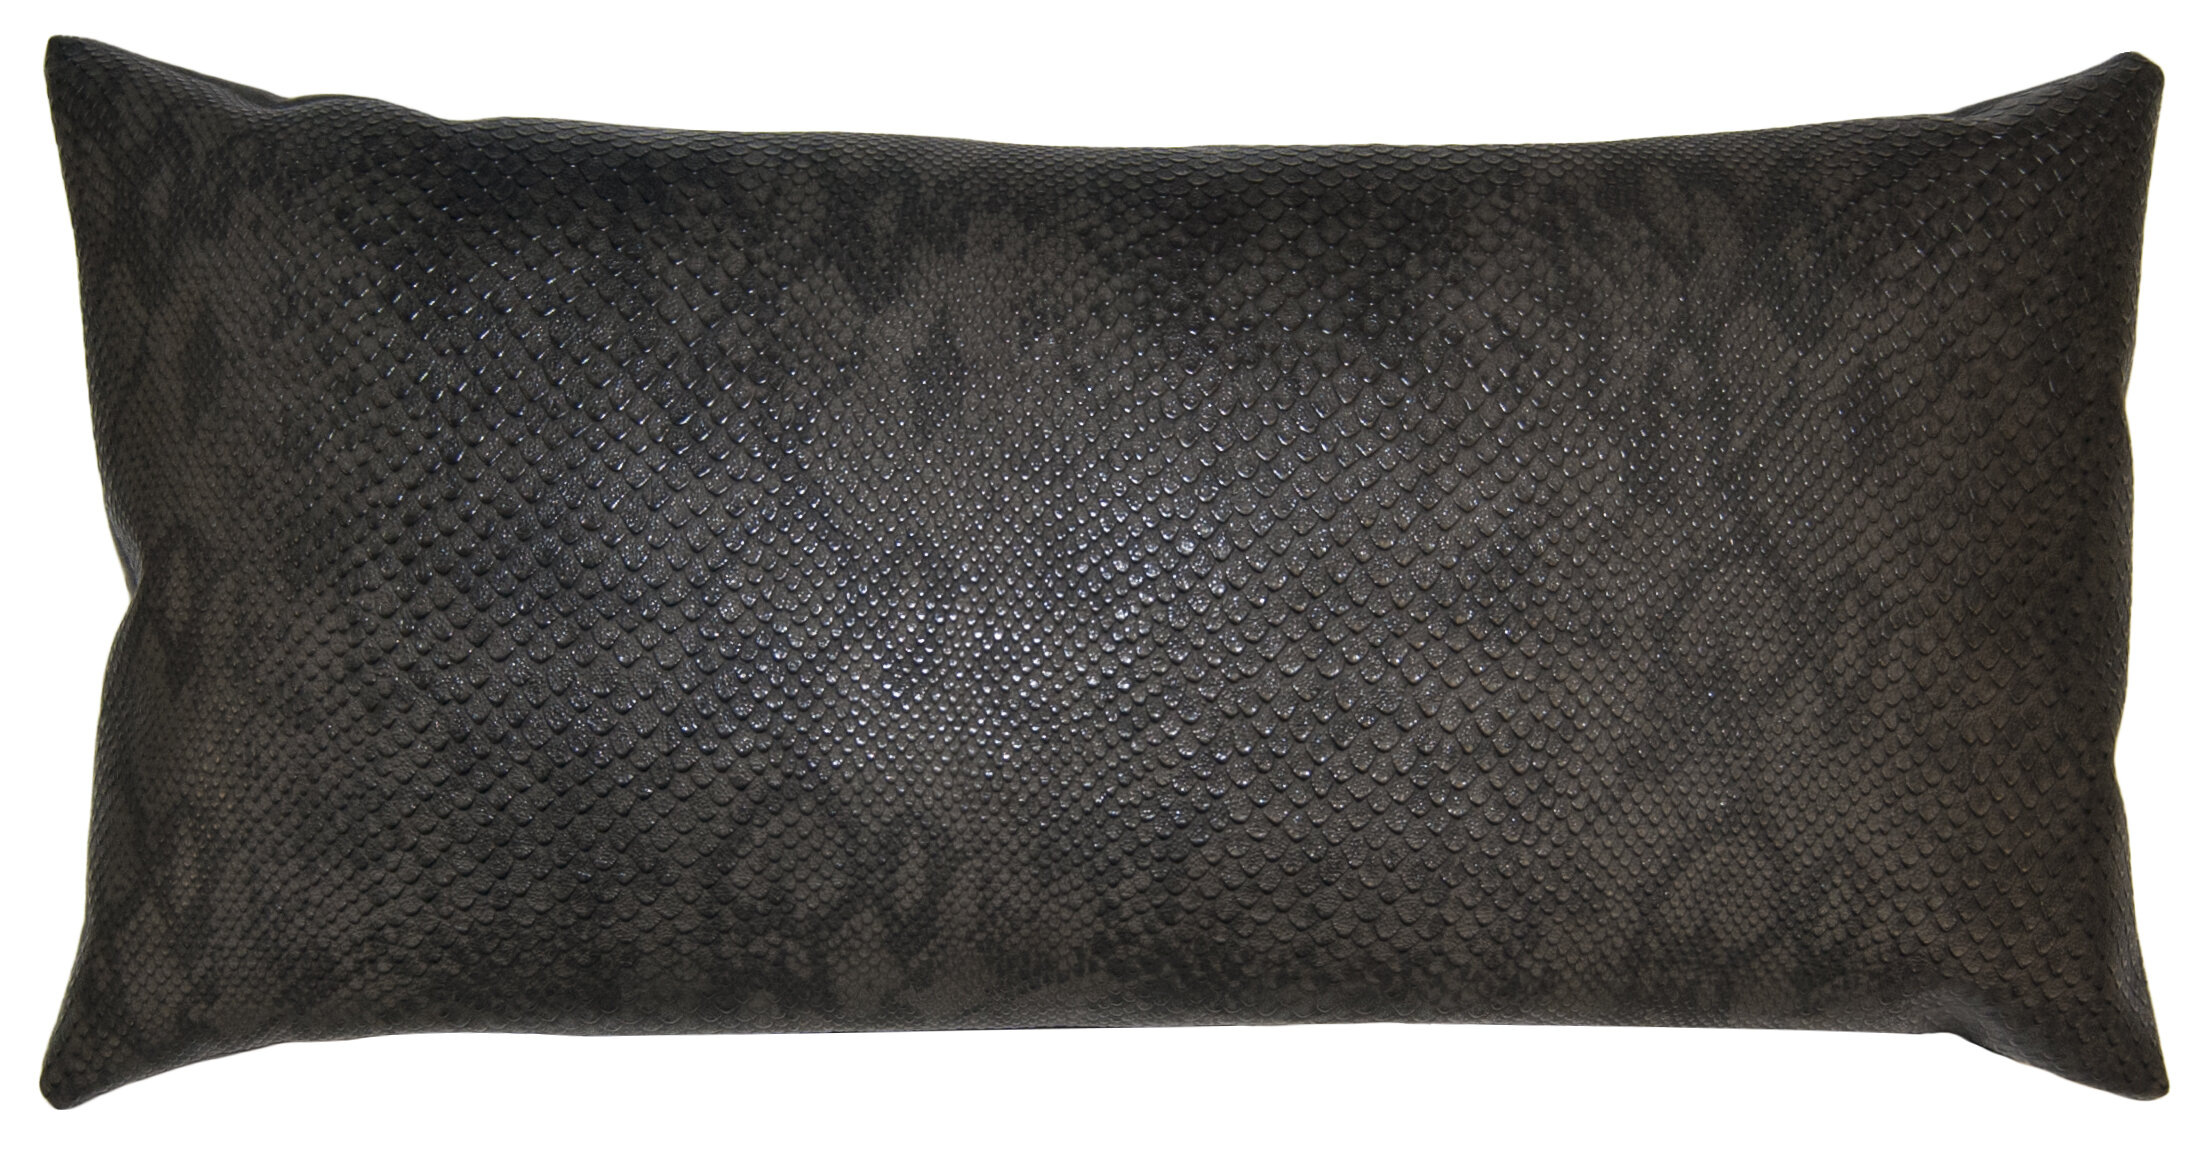 Glam Square Feathers Throw Pillows You Ll Love In 2021 Wayfair